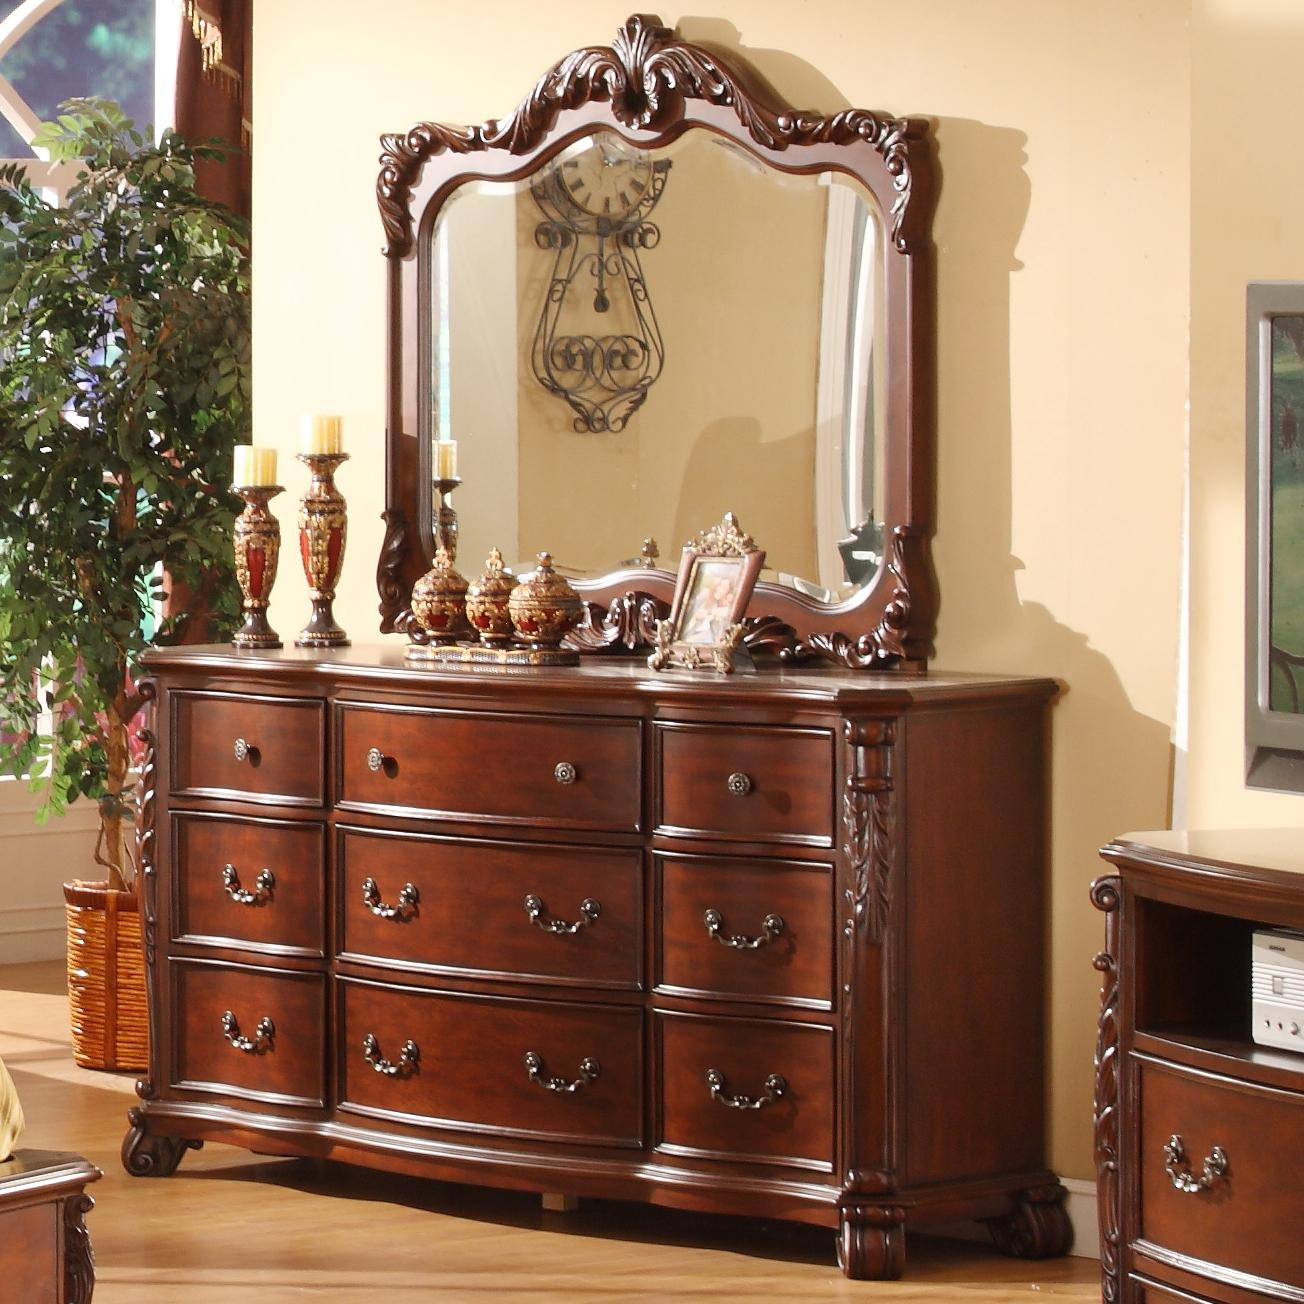 Lifestyle Frenchy Traditional 9 Drawer Dresser and Mirror with Acanthus Leaf Detailing  Royal